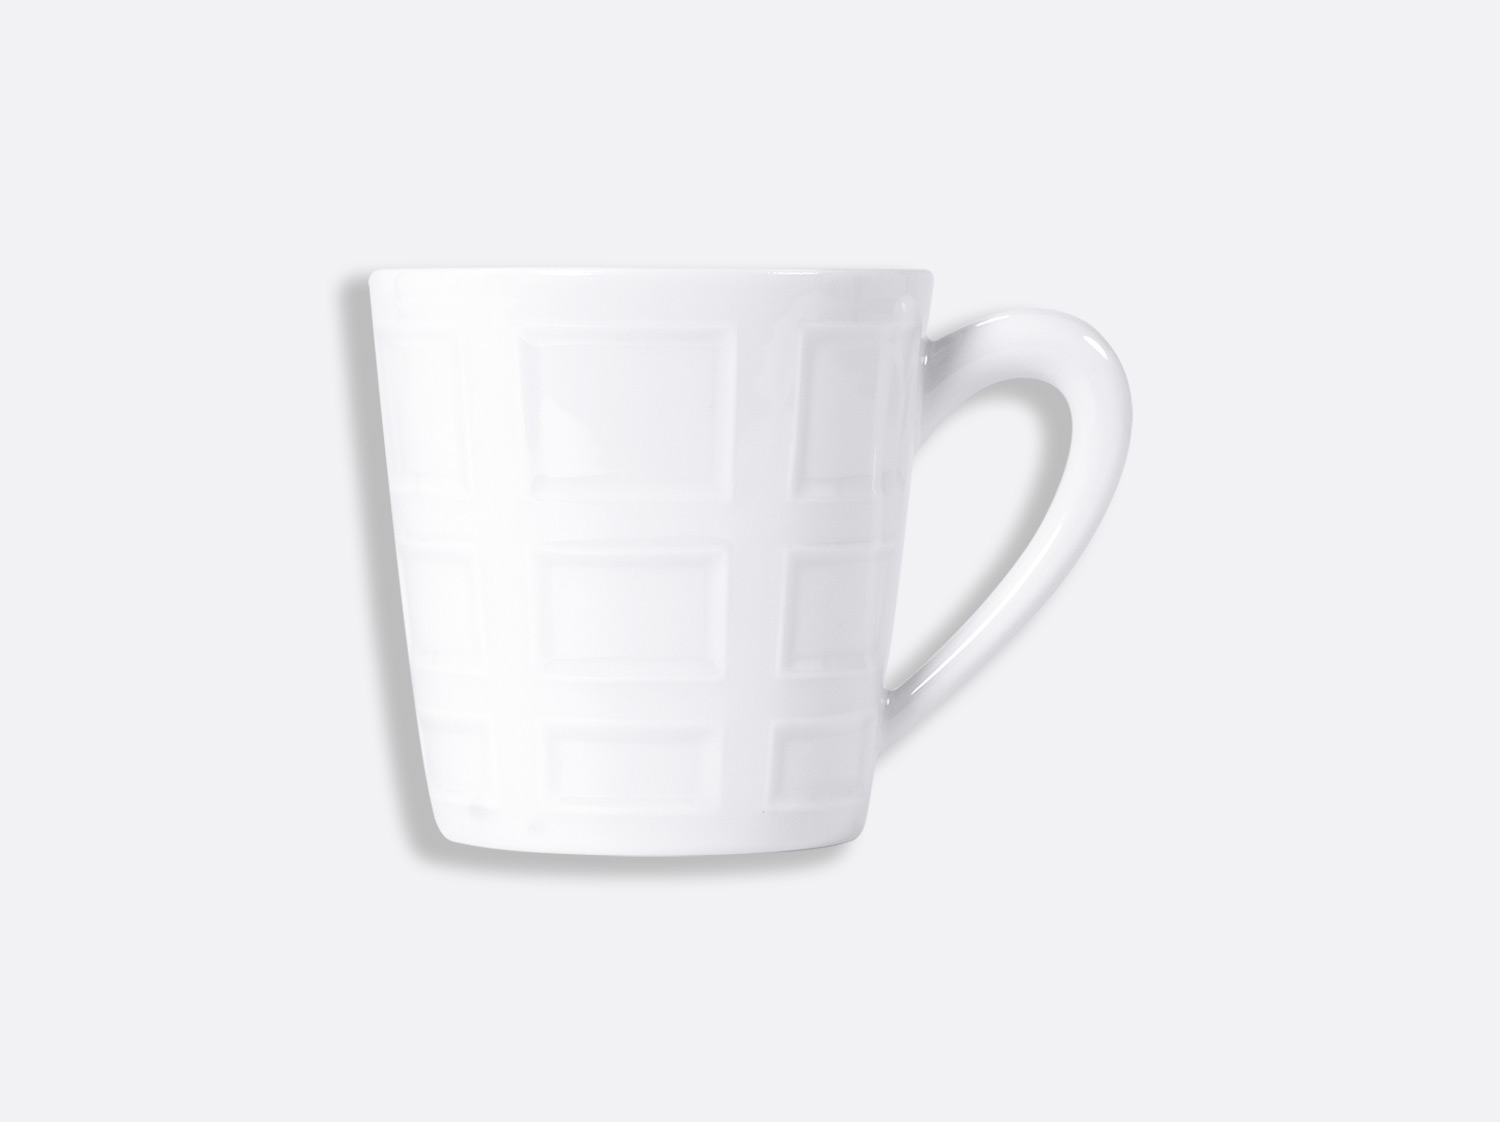 Mug 25 cl en porcelaine de la collection ATHOS BLANC Bernardaud